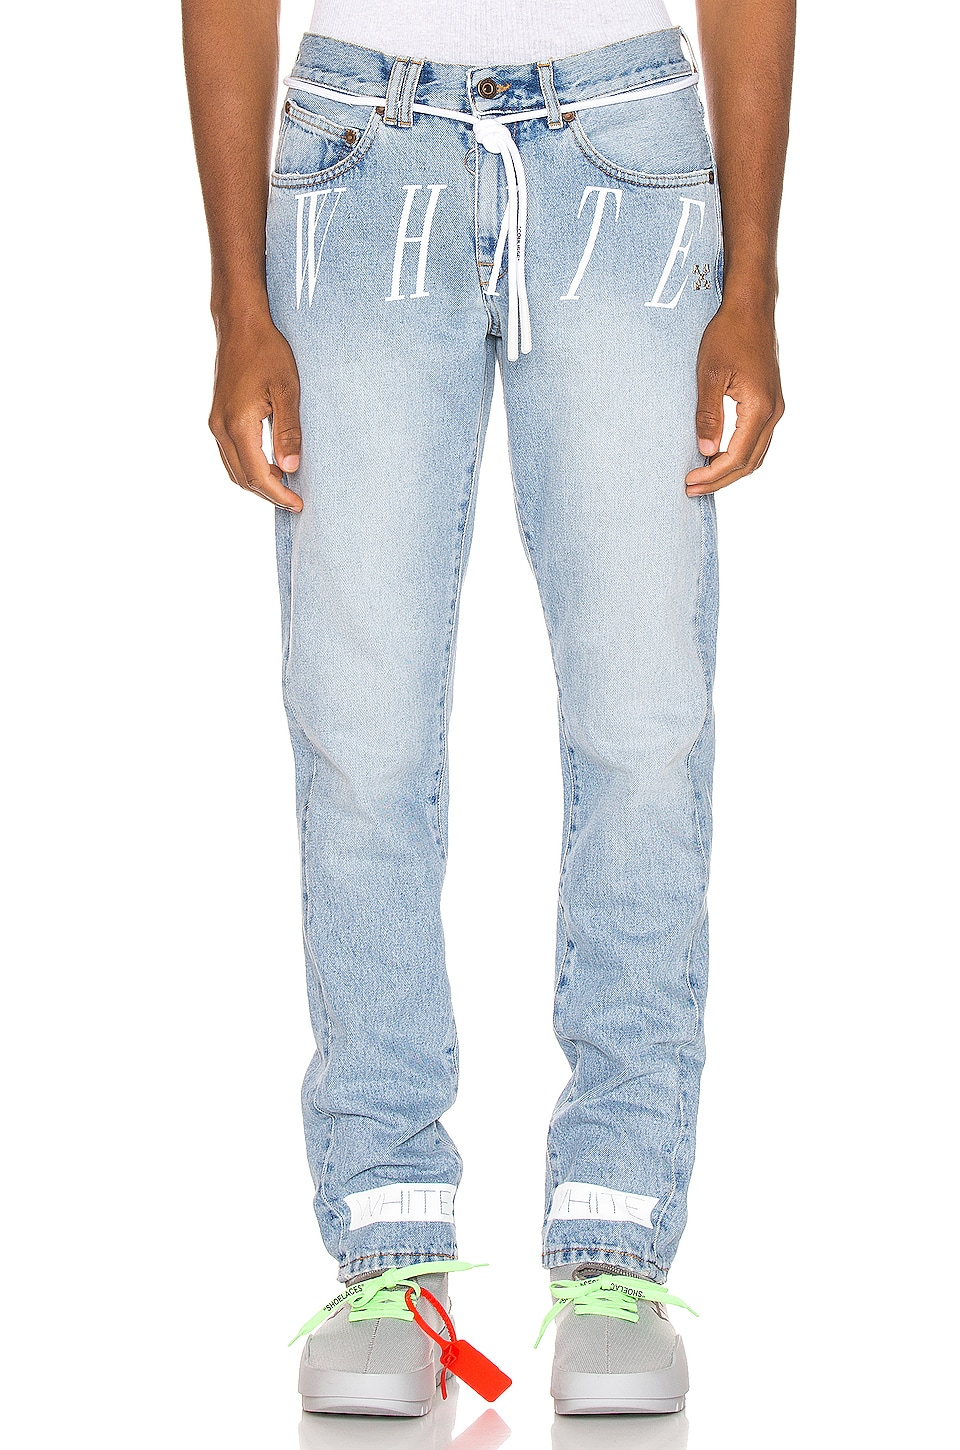 OFF-WHITE Slim Denim Jean in Bleach Nikel